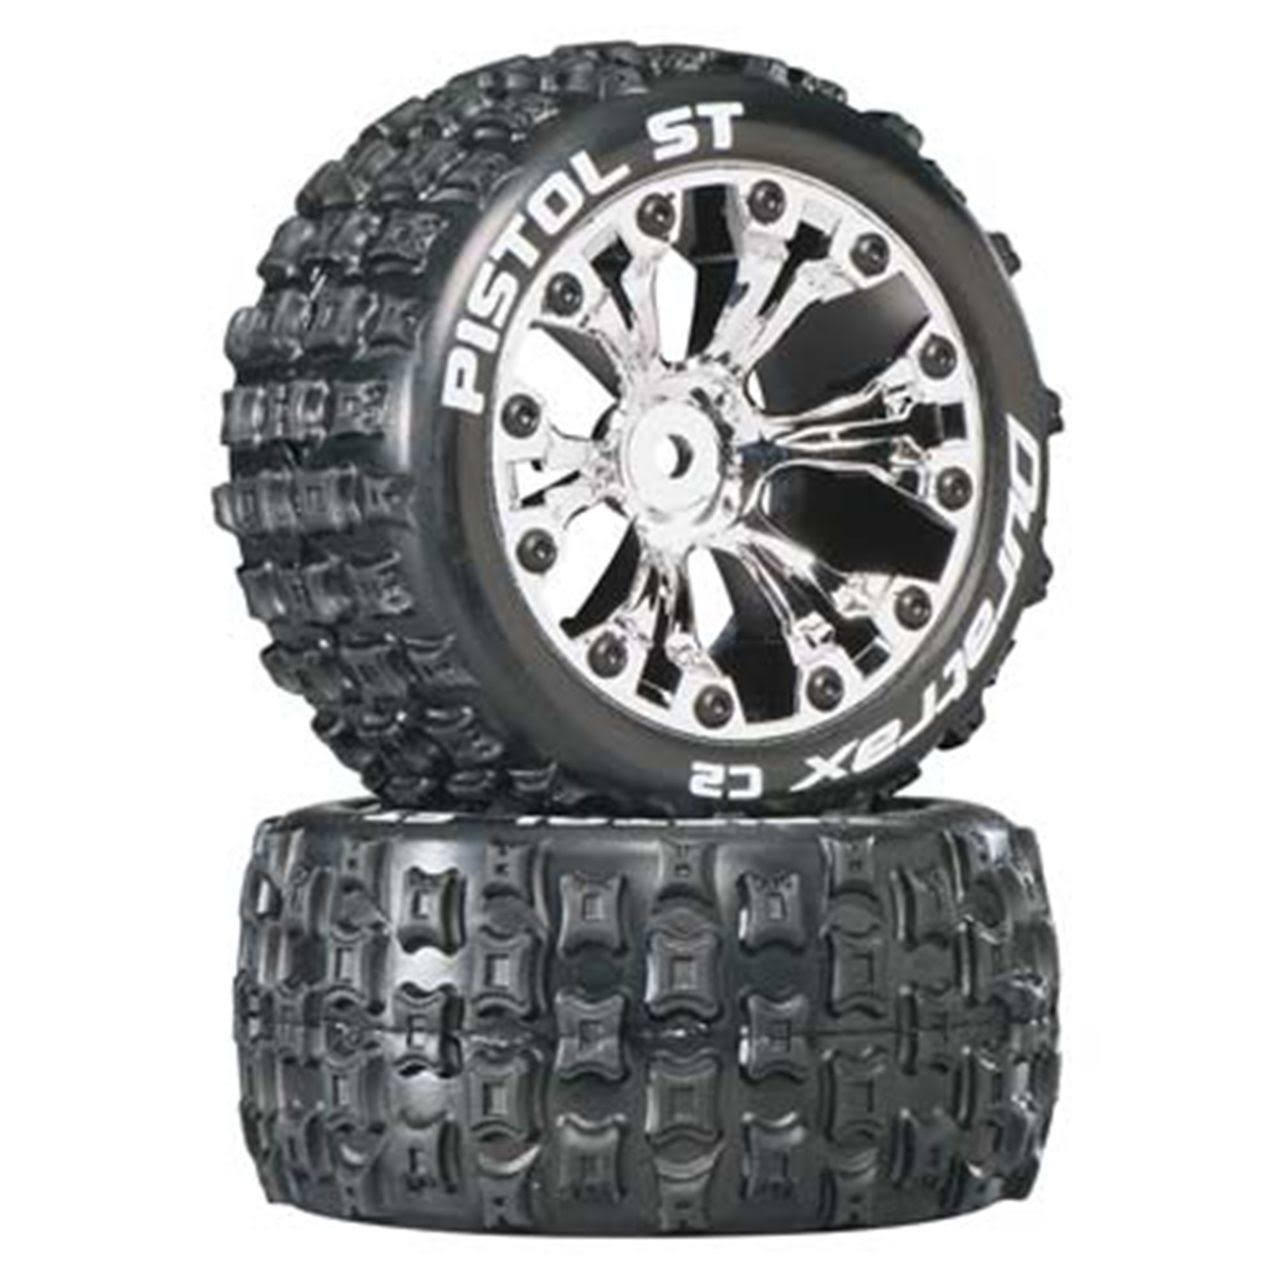 Duratrax DTXC3555 Pistol ST 2WD Mounted Rear C2 Tires - Chrome, 2.8in, 2-Pack